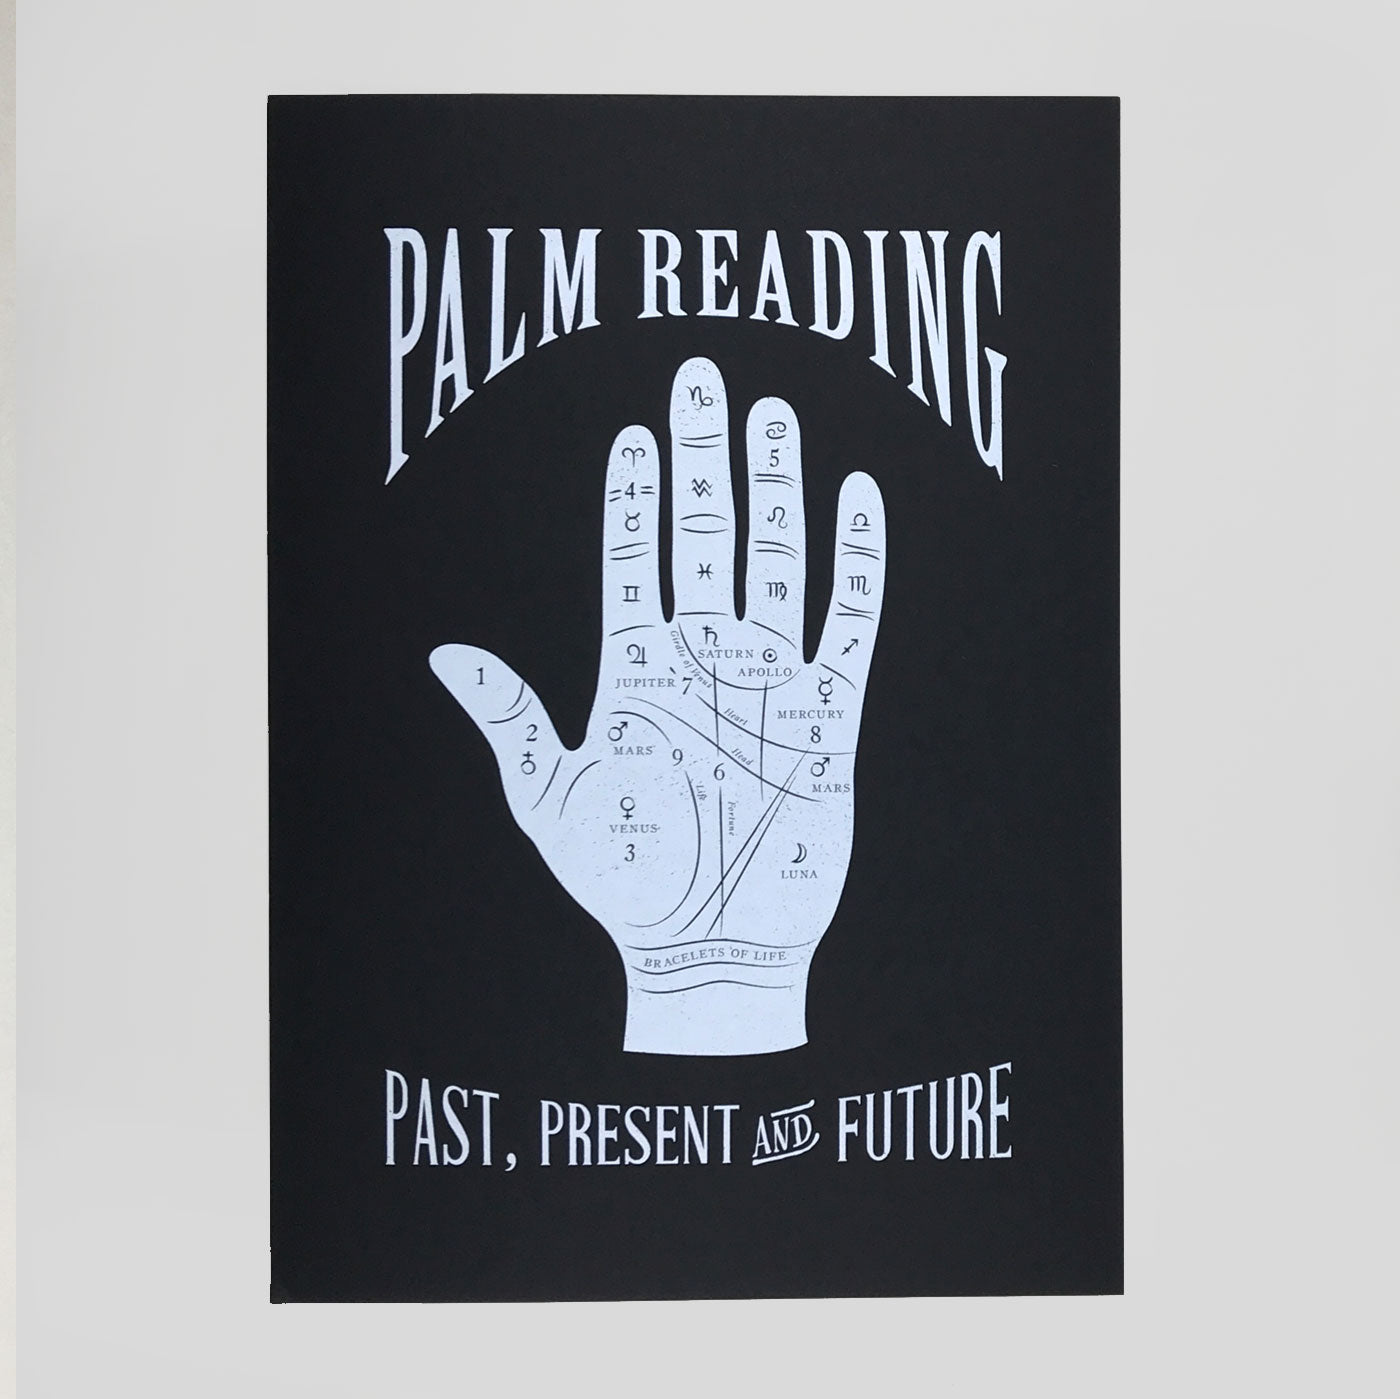 palmistry screenprint by Passport for Phantasm